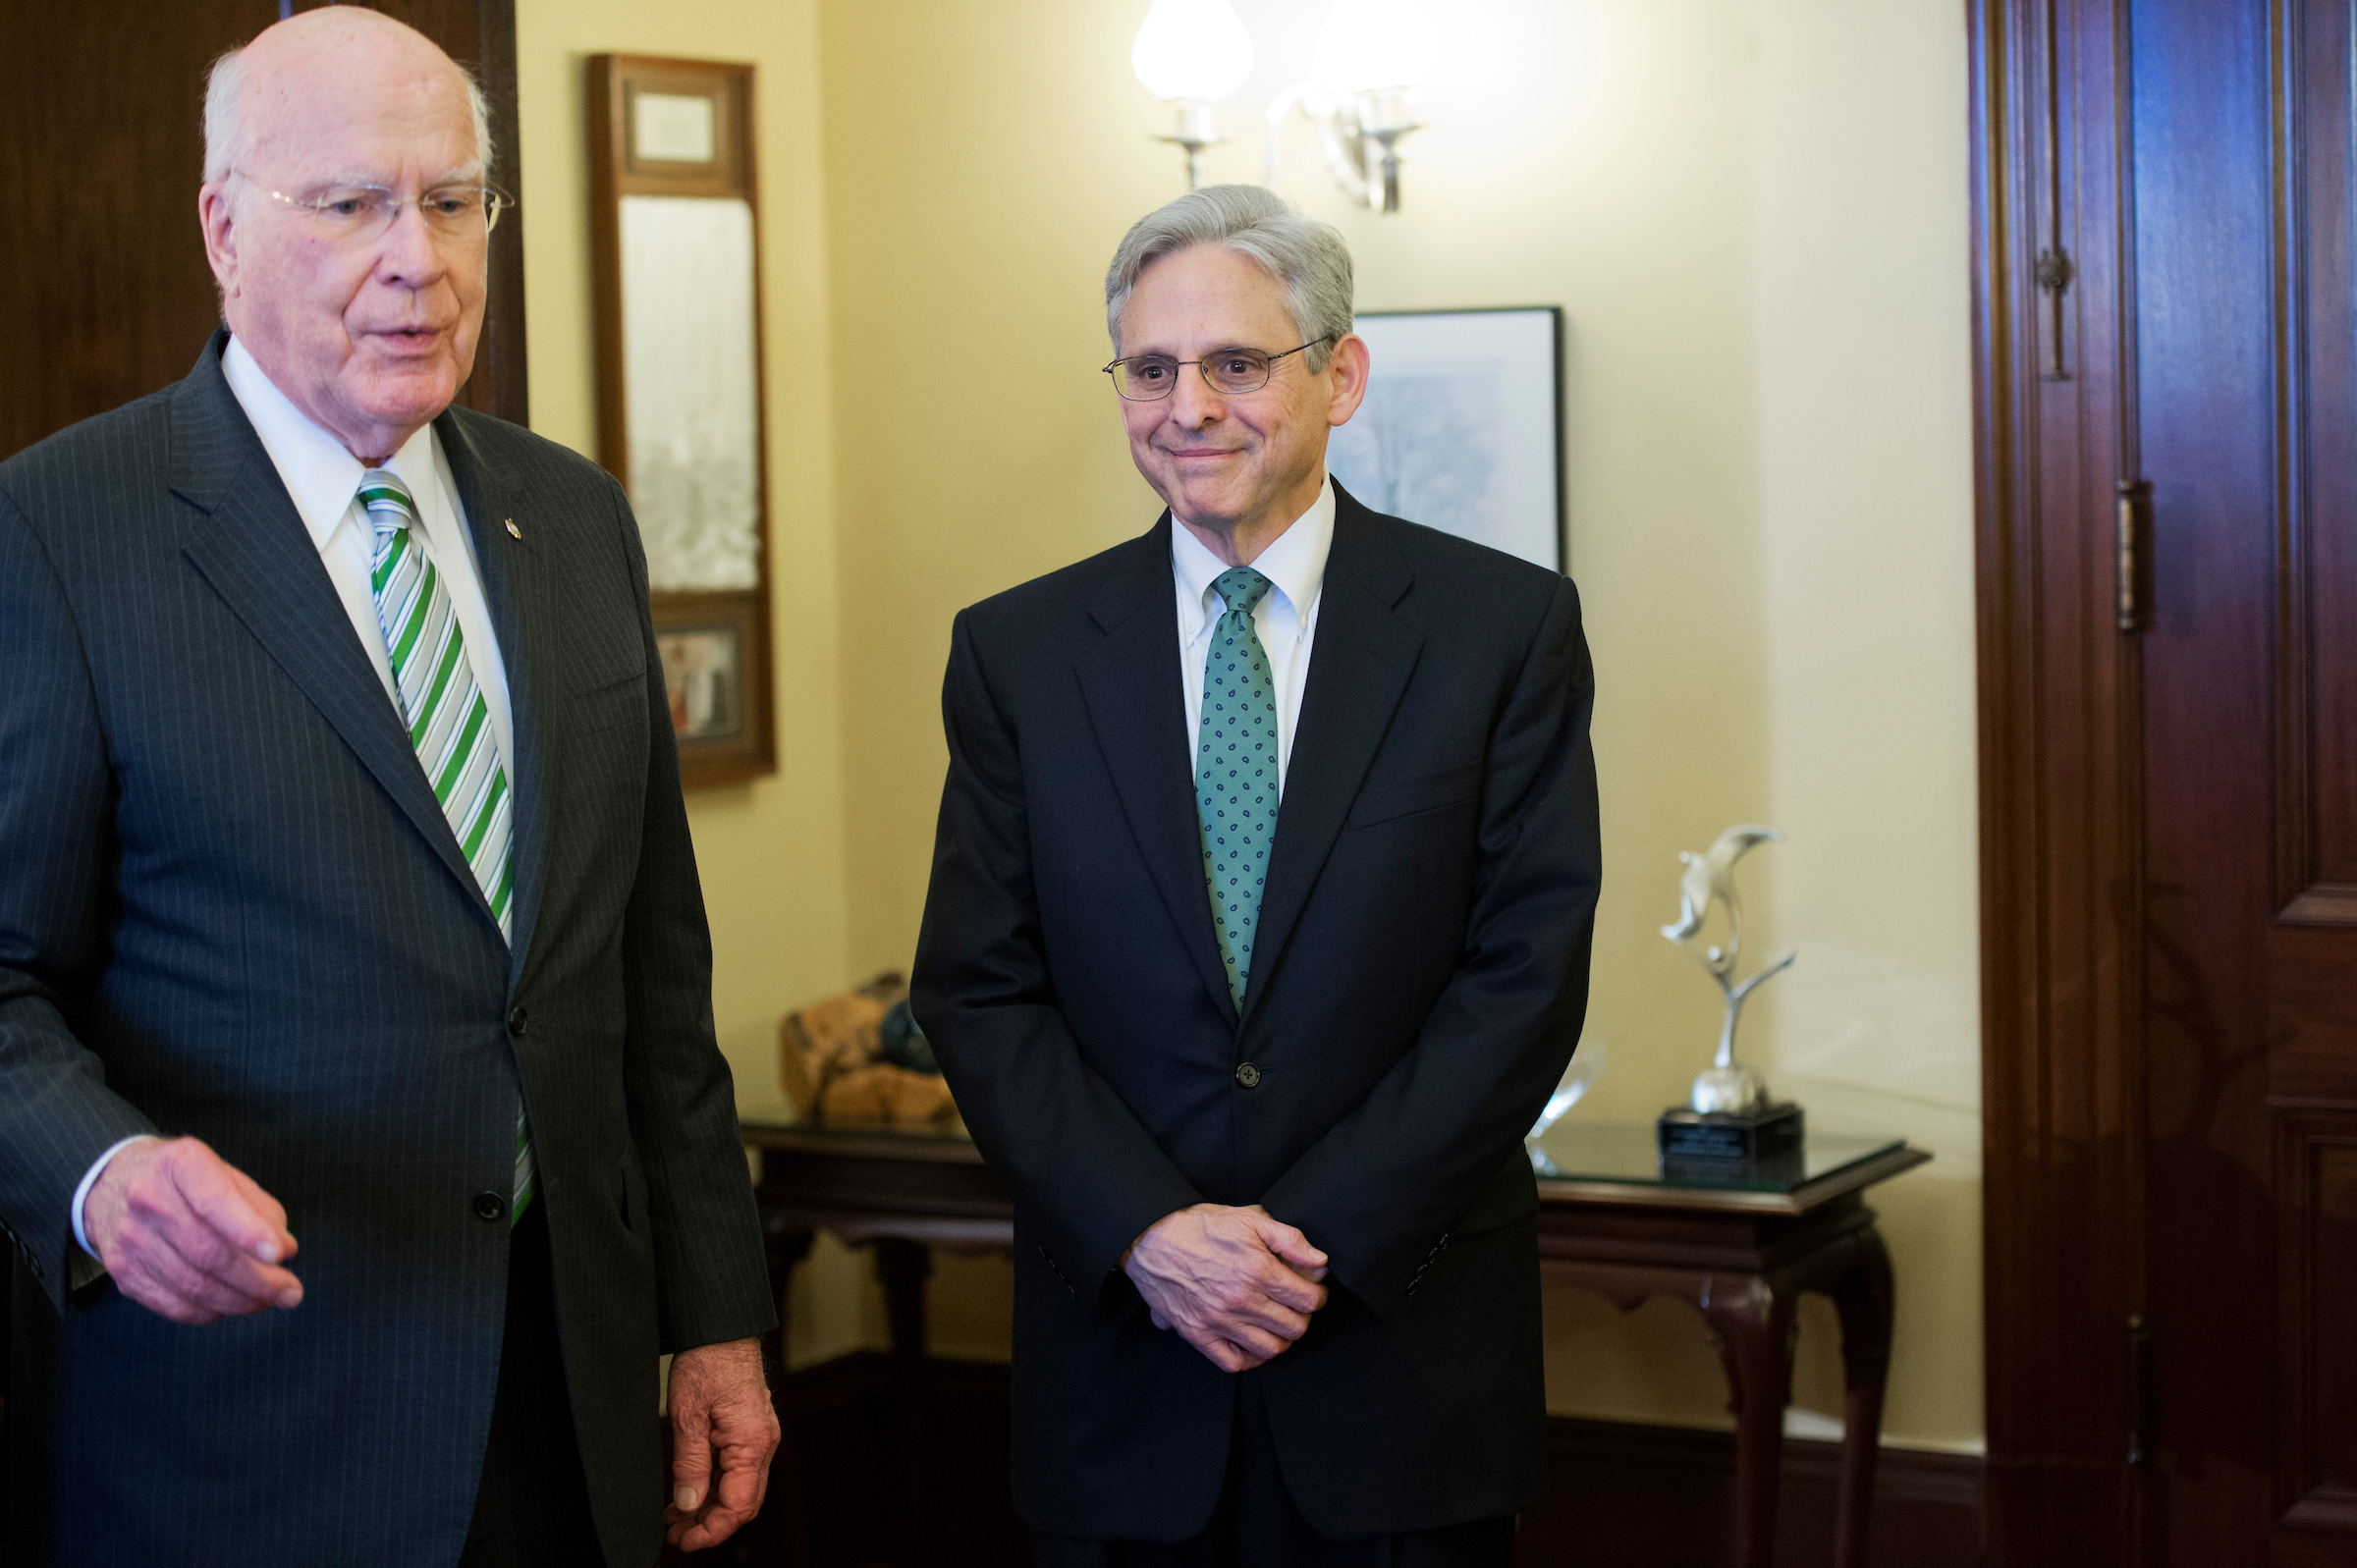 Garland, right, met with Leahy as well one year ago today. (Al Drago/CQ Roll Call File Photo)